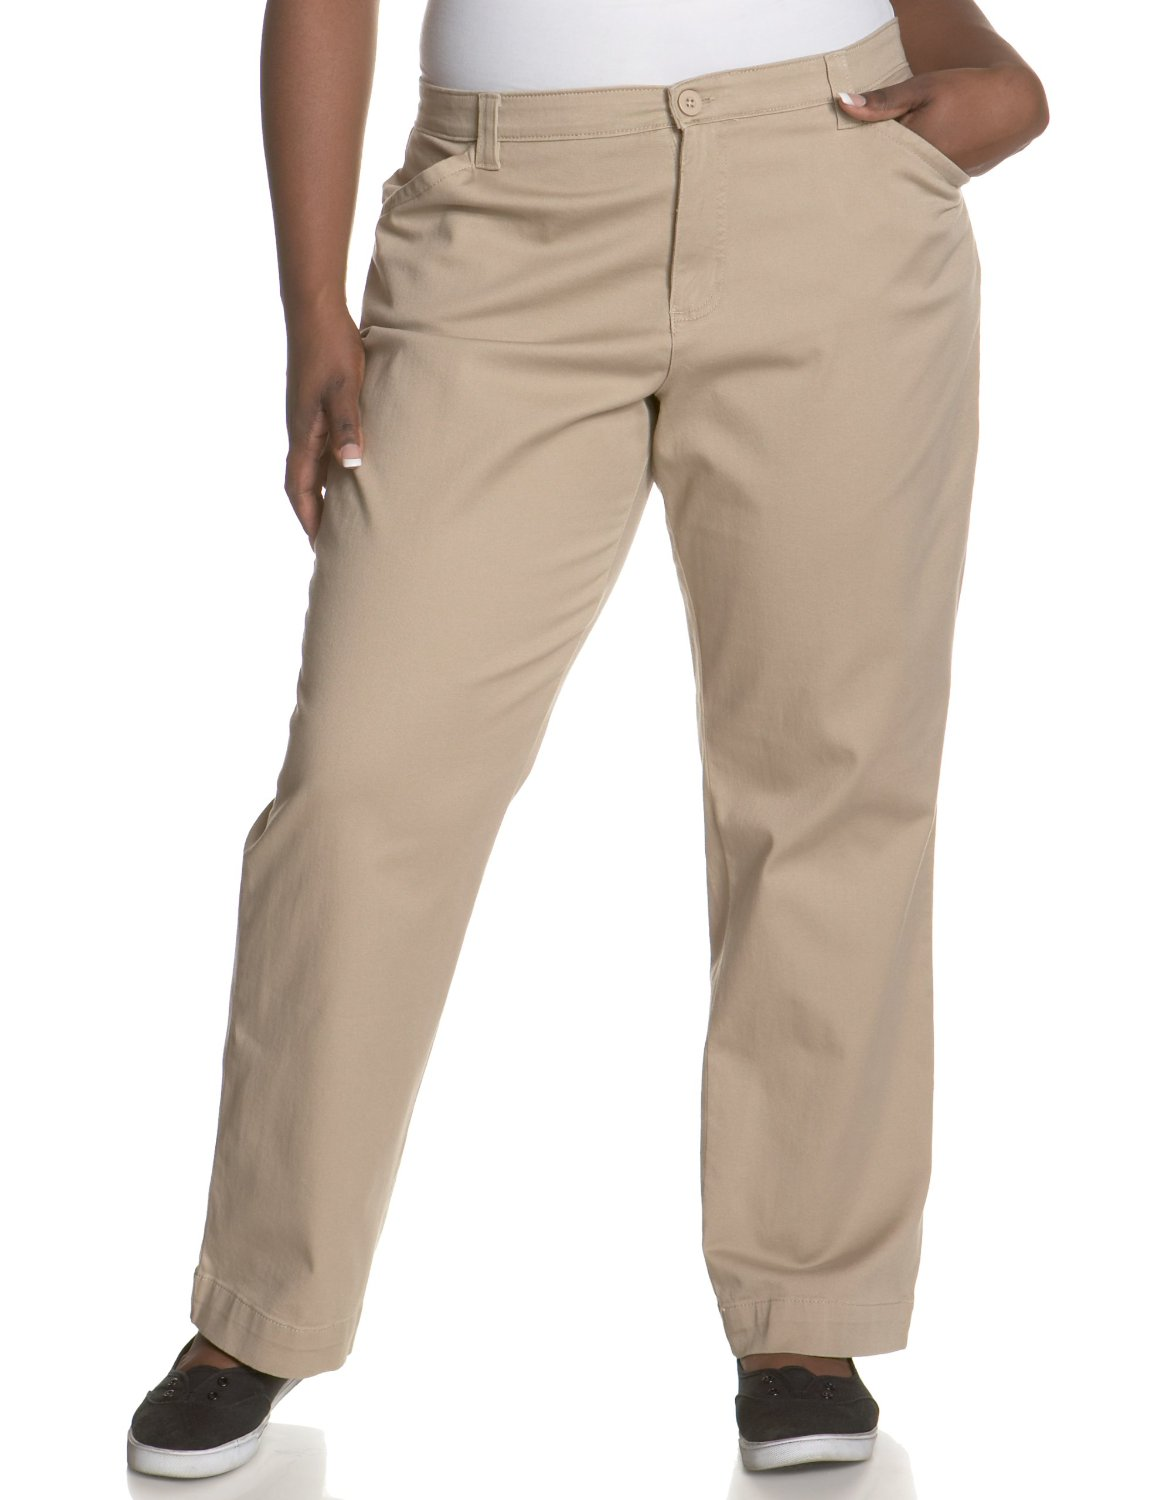 Original Khaki Pants For Women Images Amp Pictures  Becuo